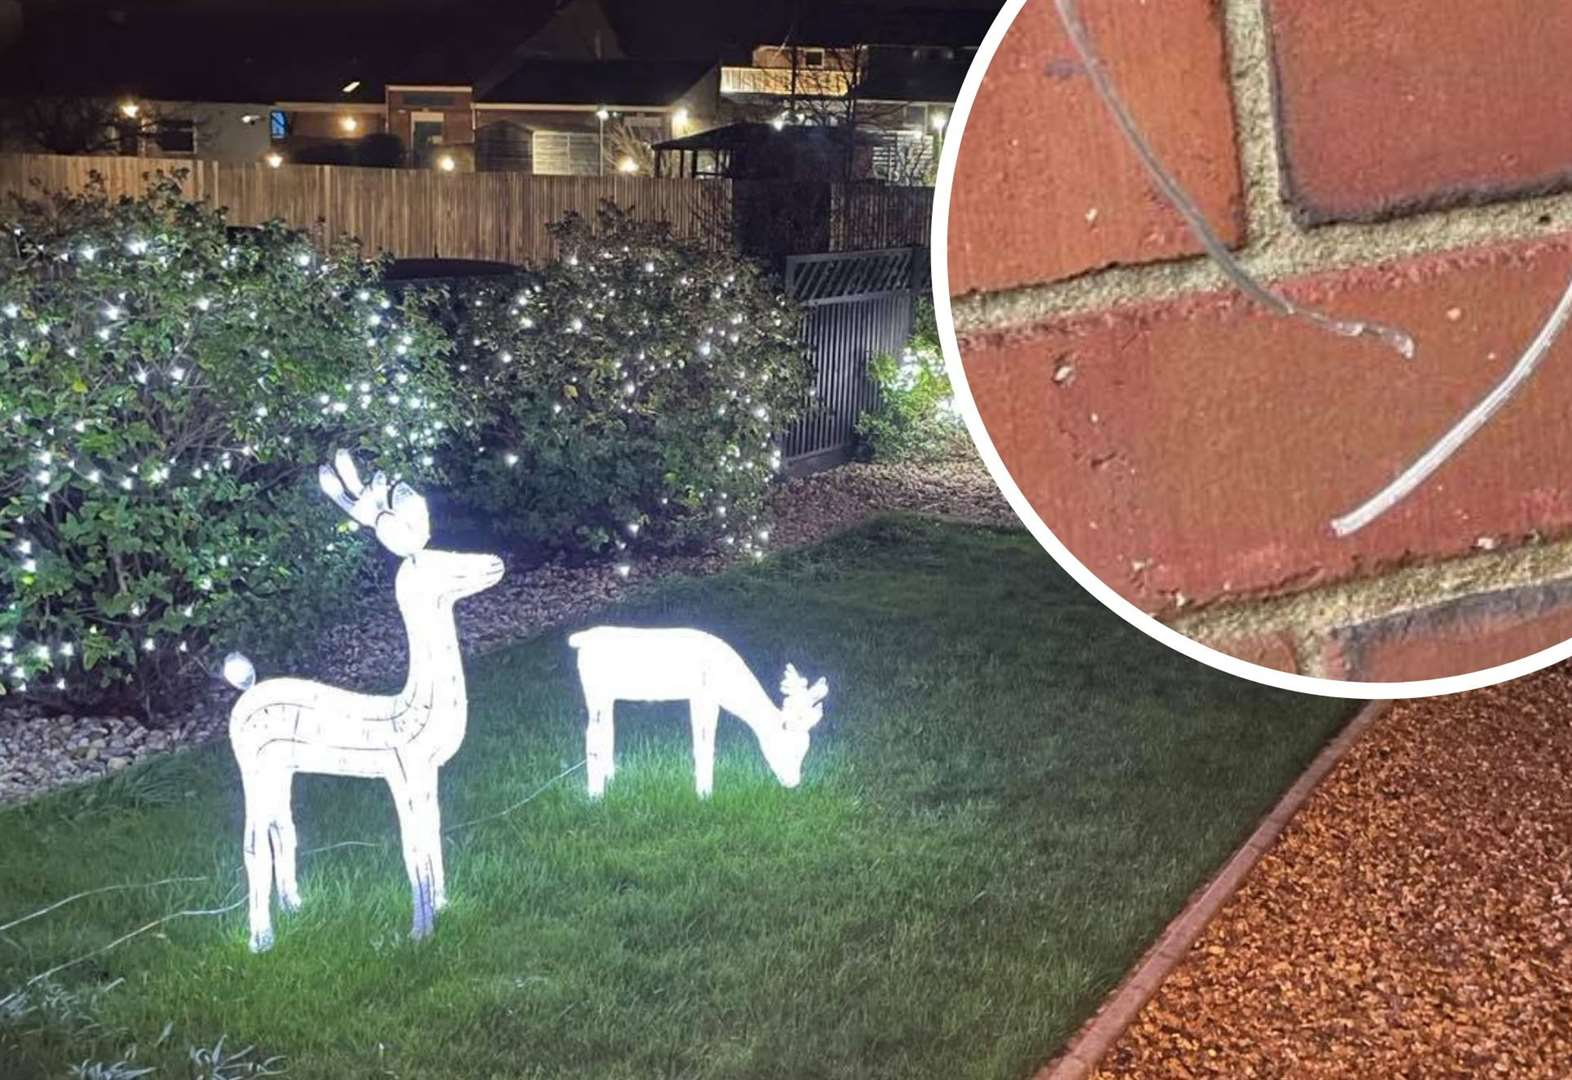 'Grinchy' vandal cuts outdoor Christmas lights